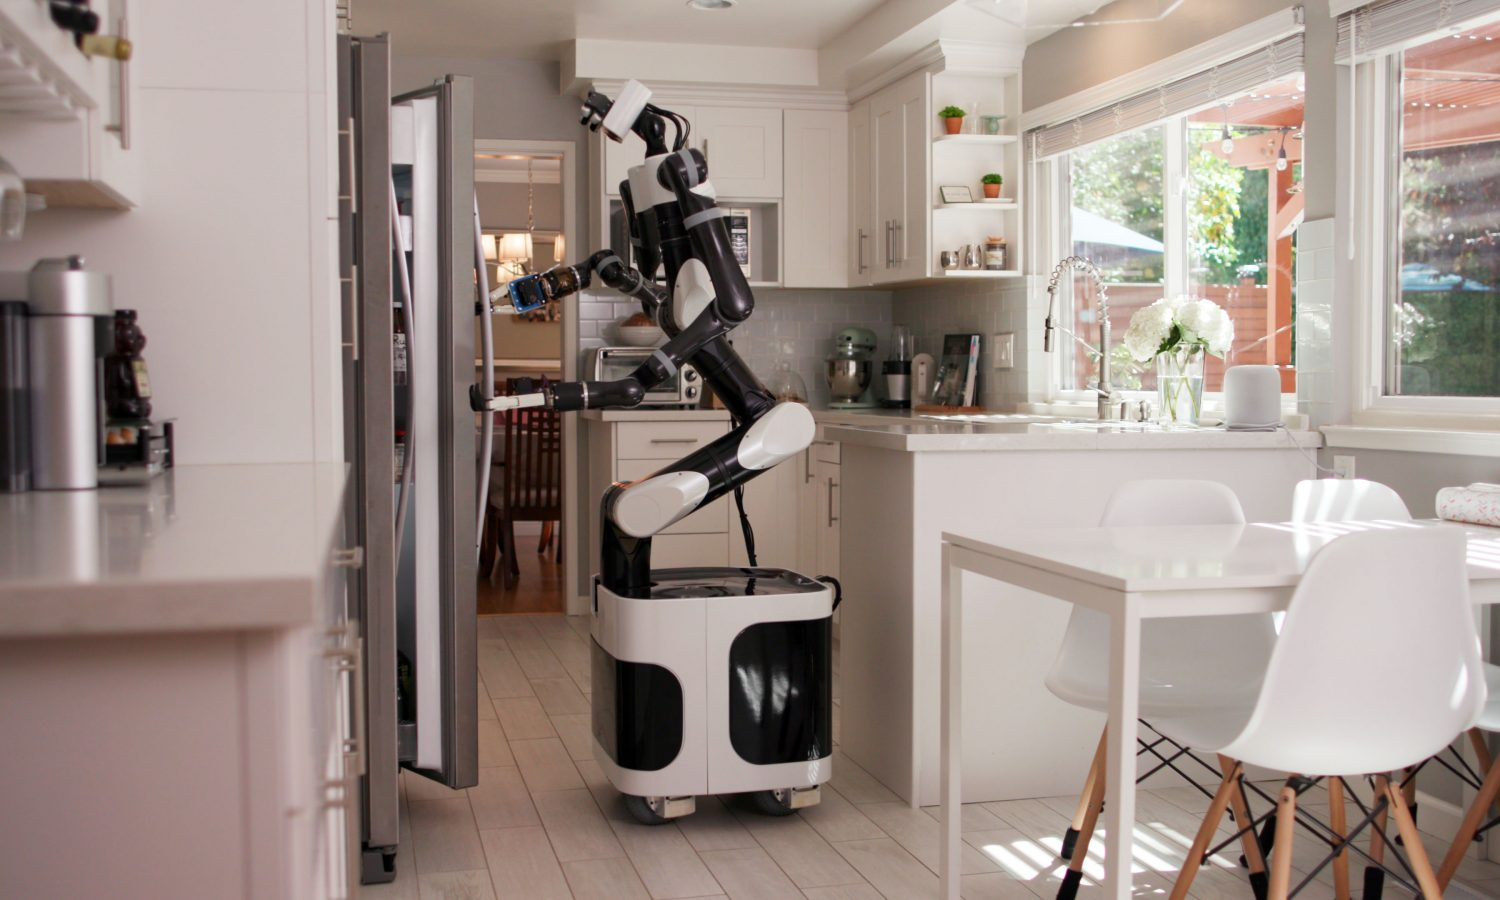 TRI Teaching Robots to Help People in their Homes